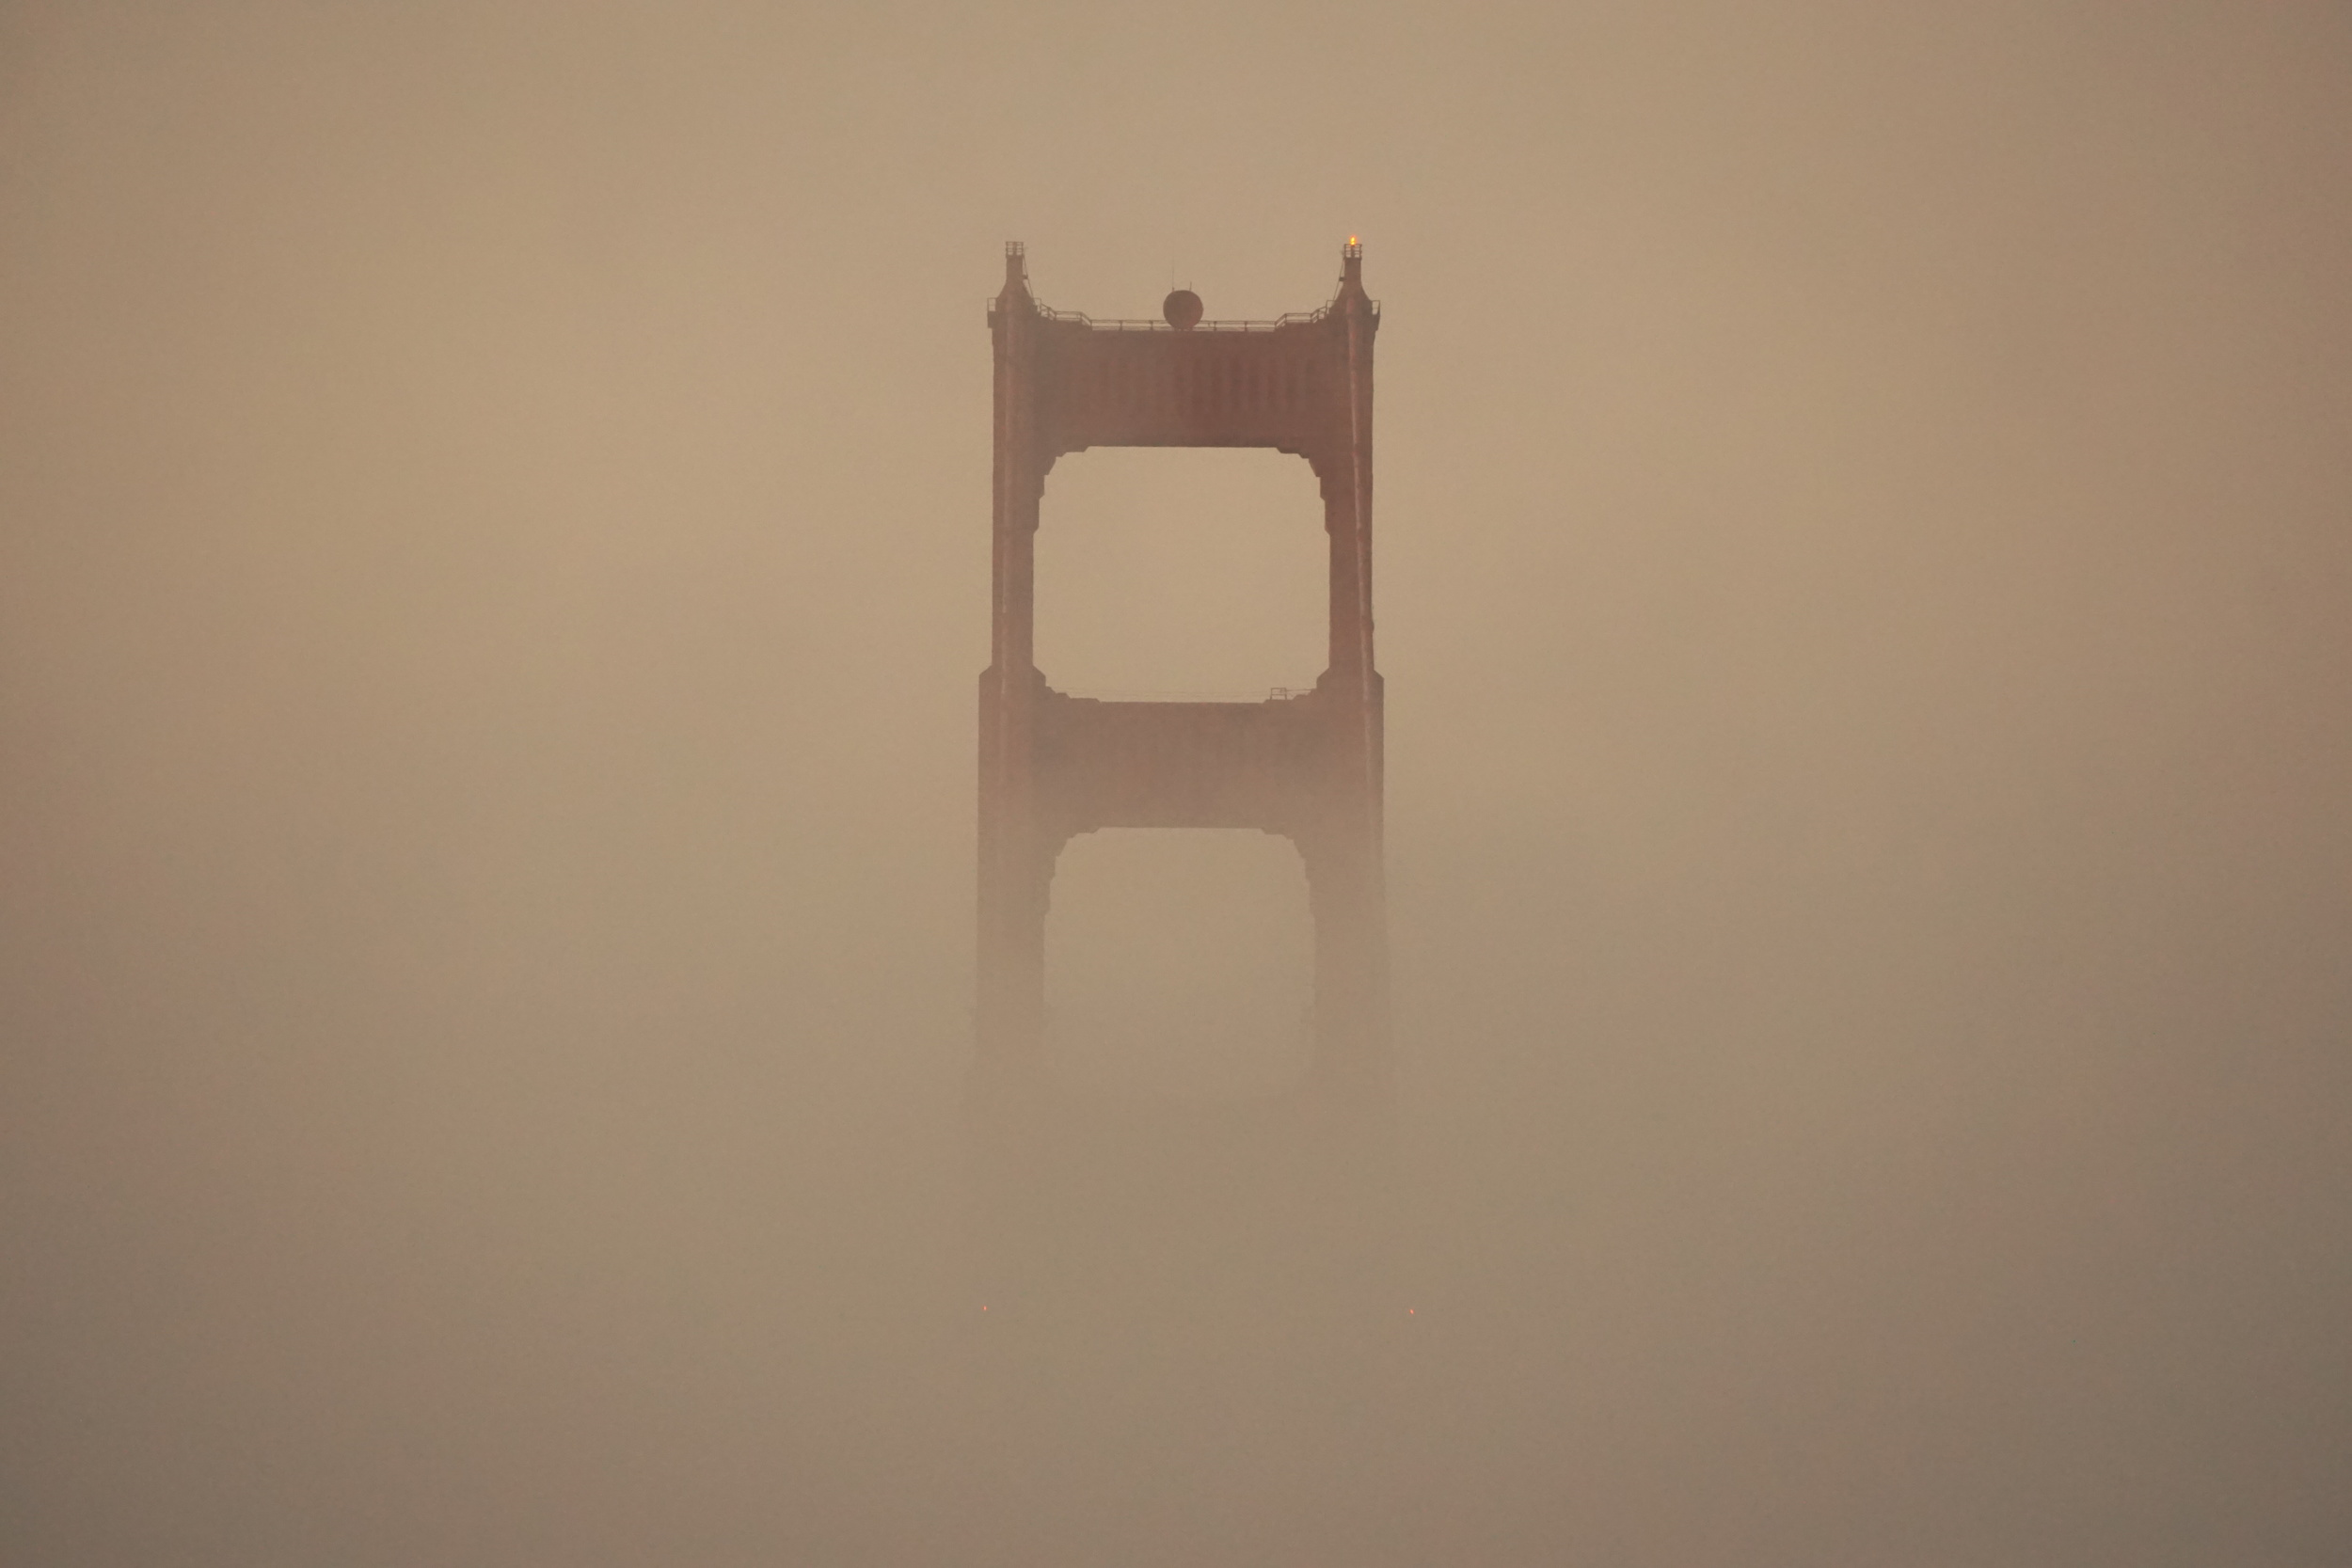 Golden Gate Bridge through the fog - San Francisco November 2015